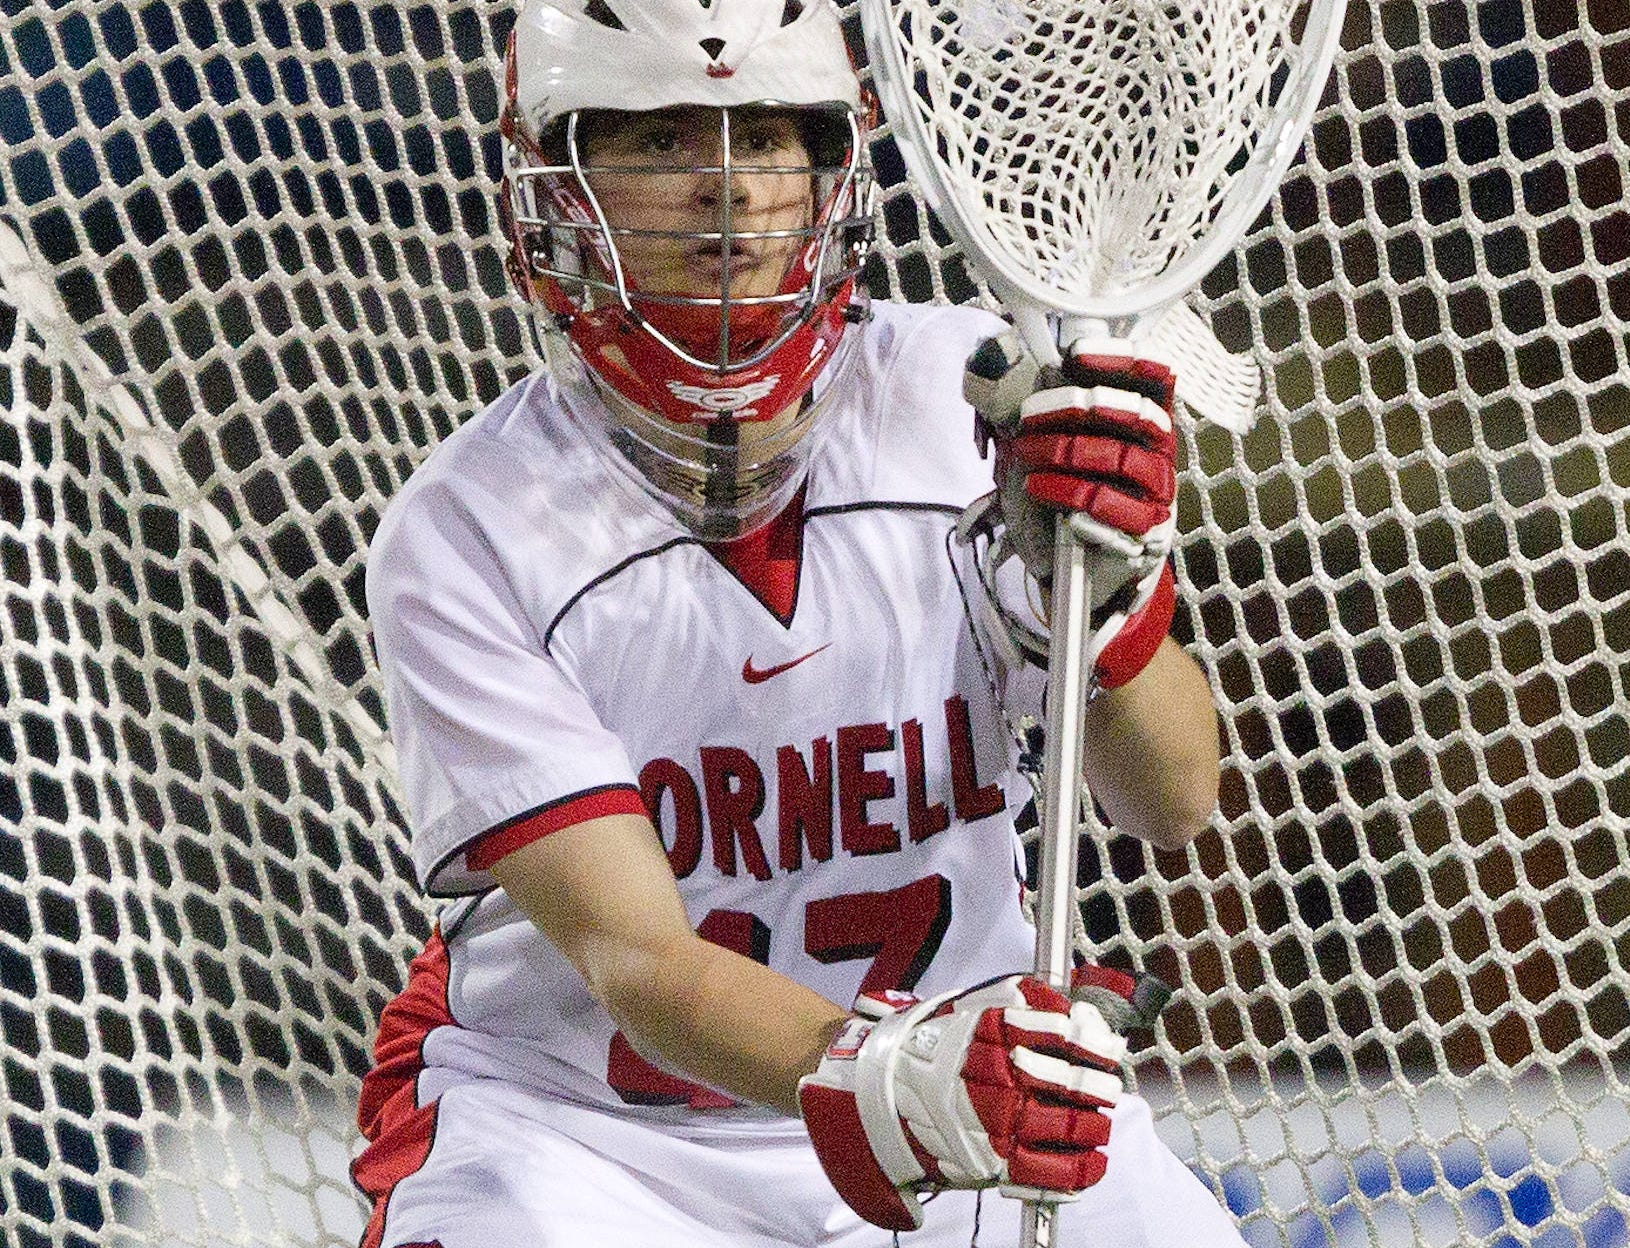 2010: Cornell's A.J. Fiore defends his goal during Cornell's  game against Syracuse in April.